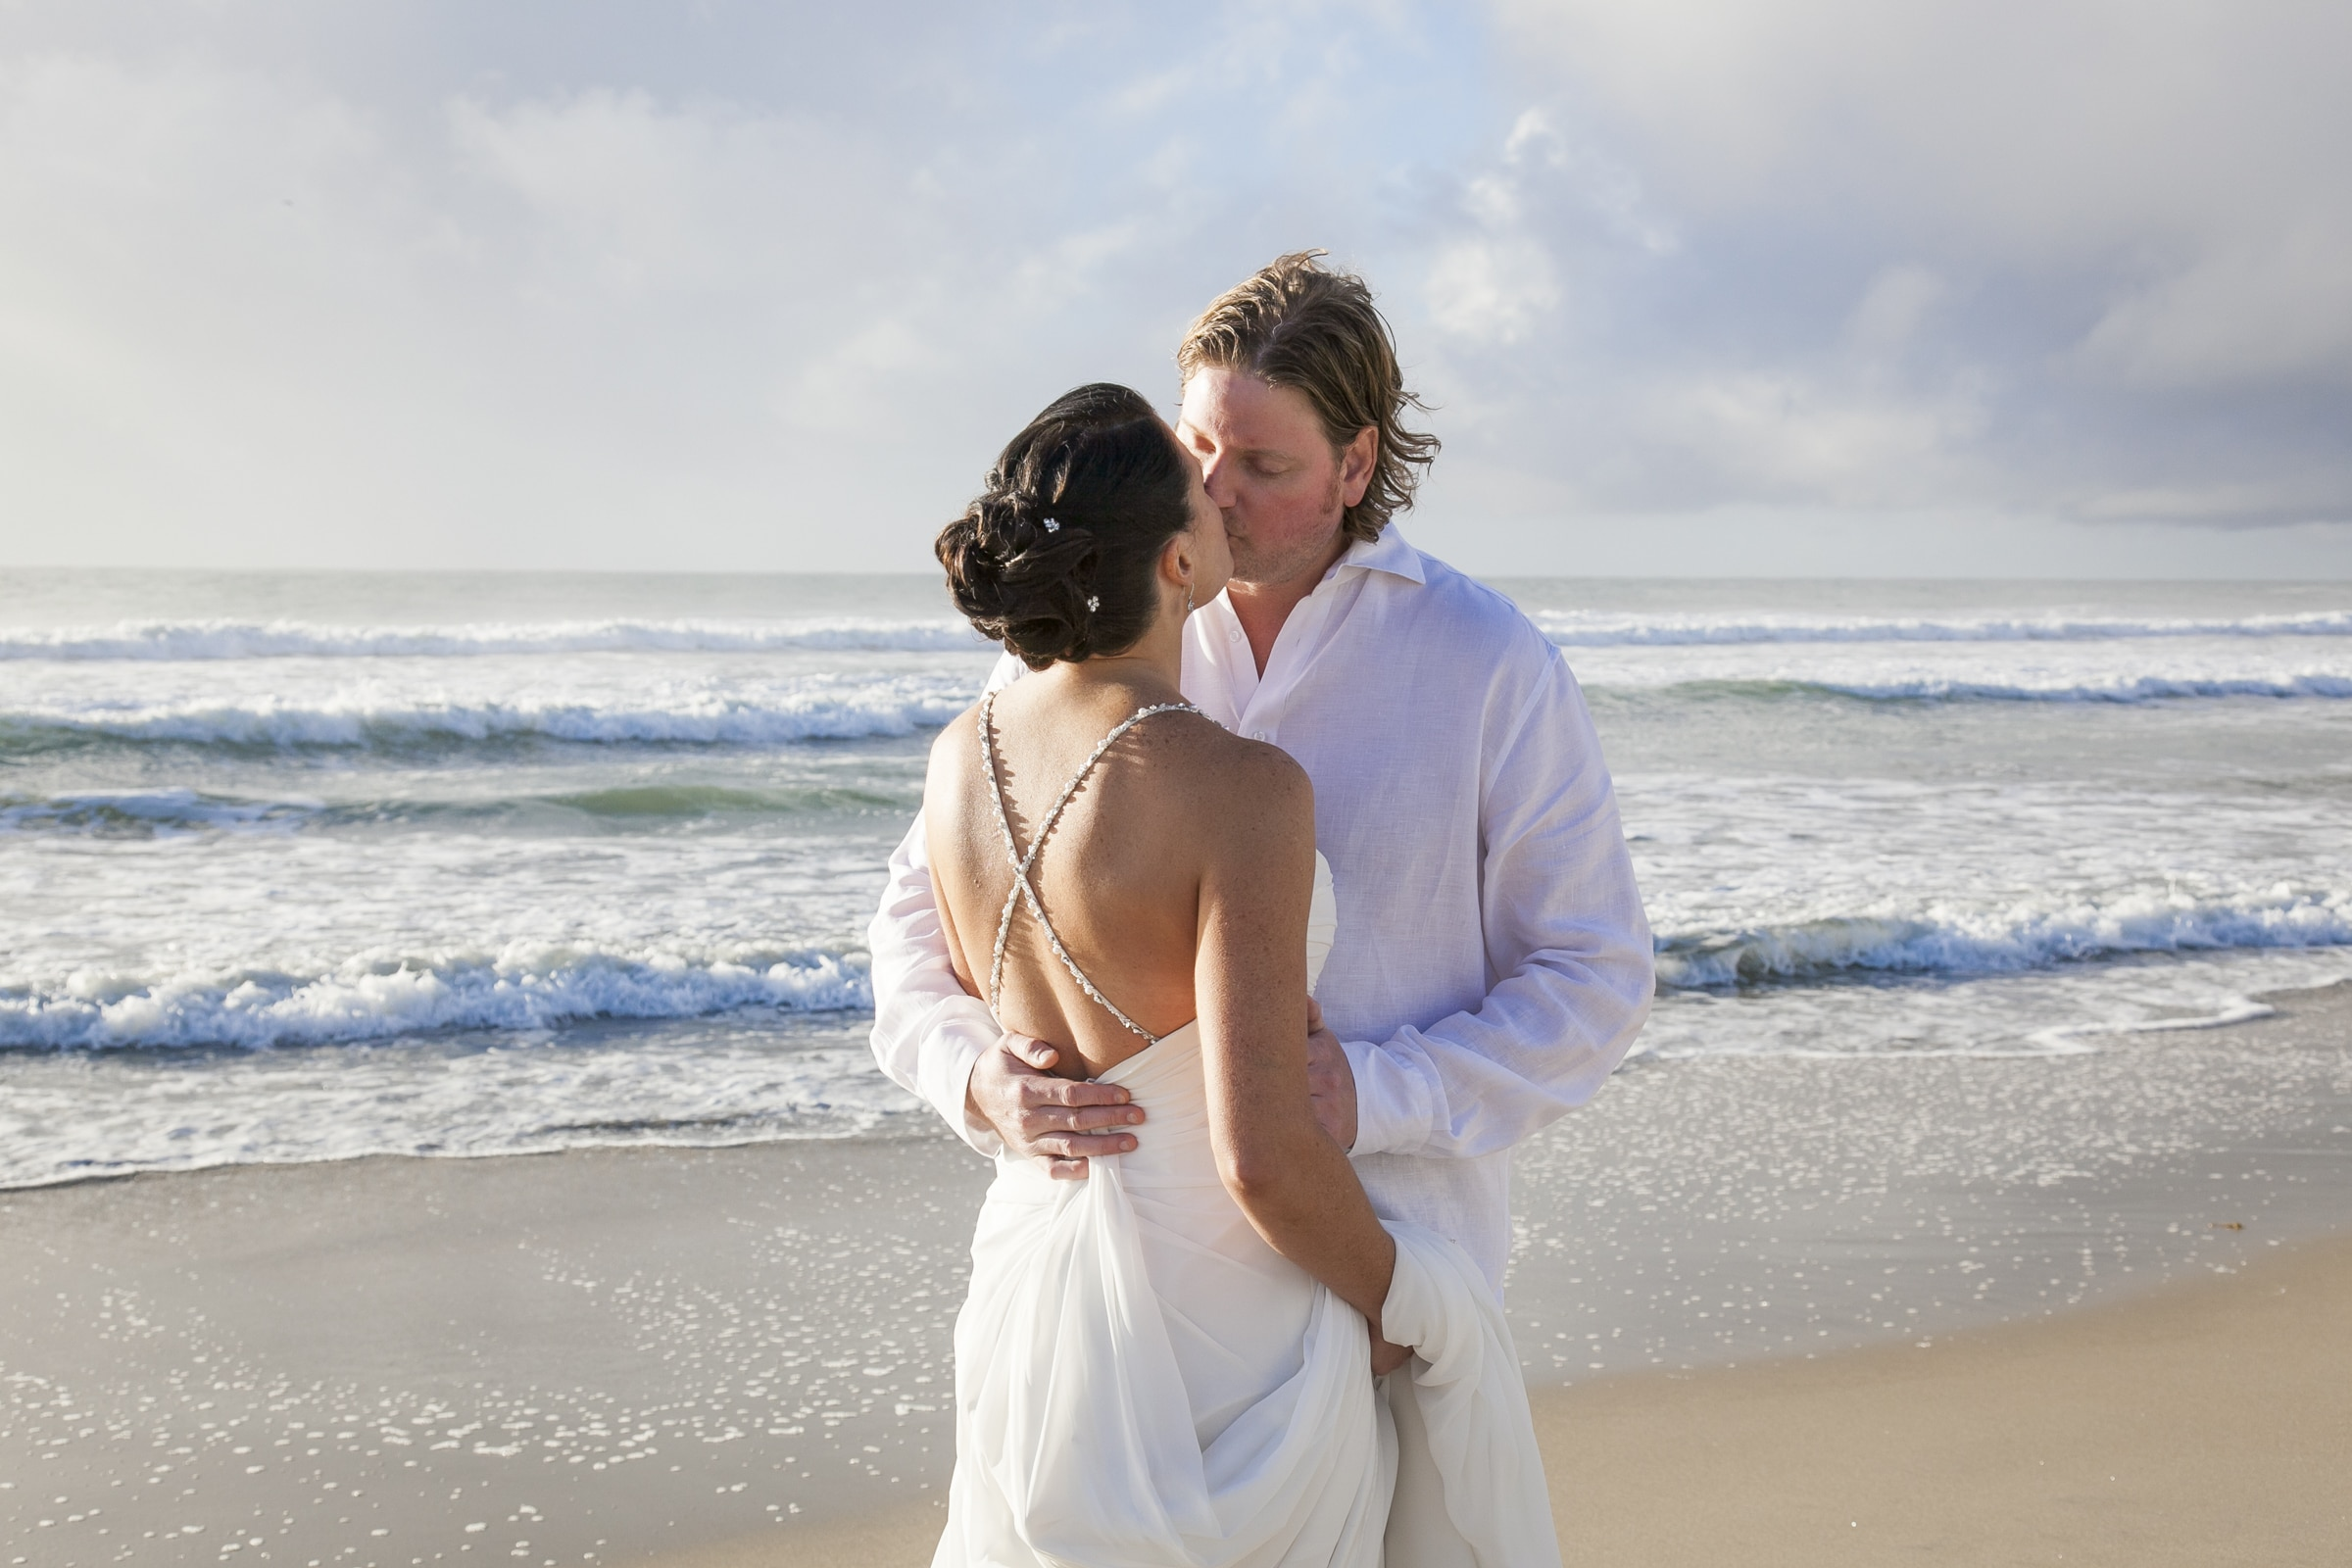 pb-beach-wedding-6